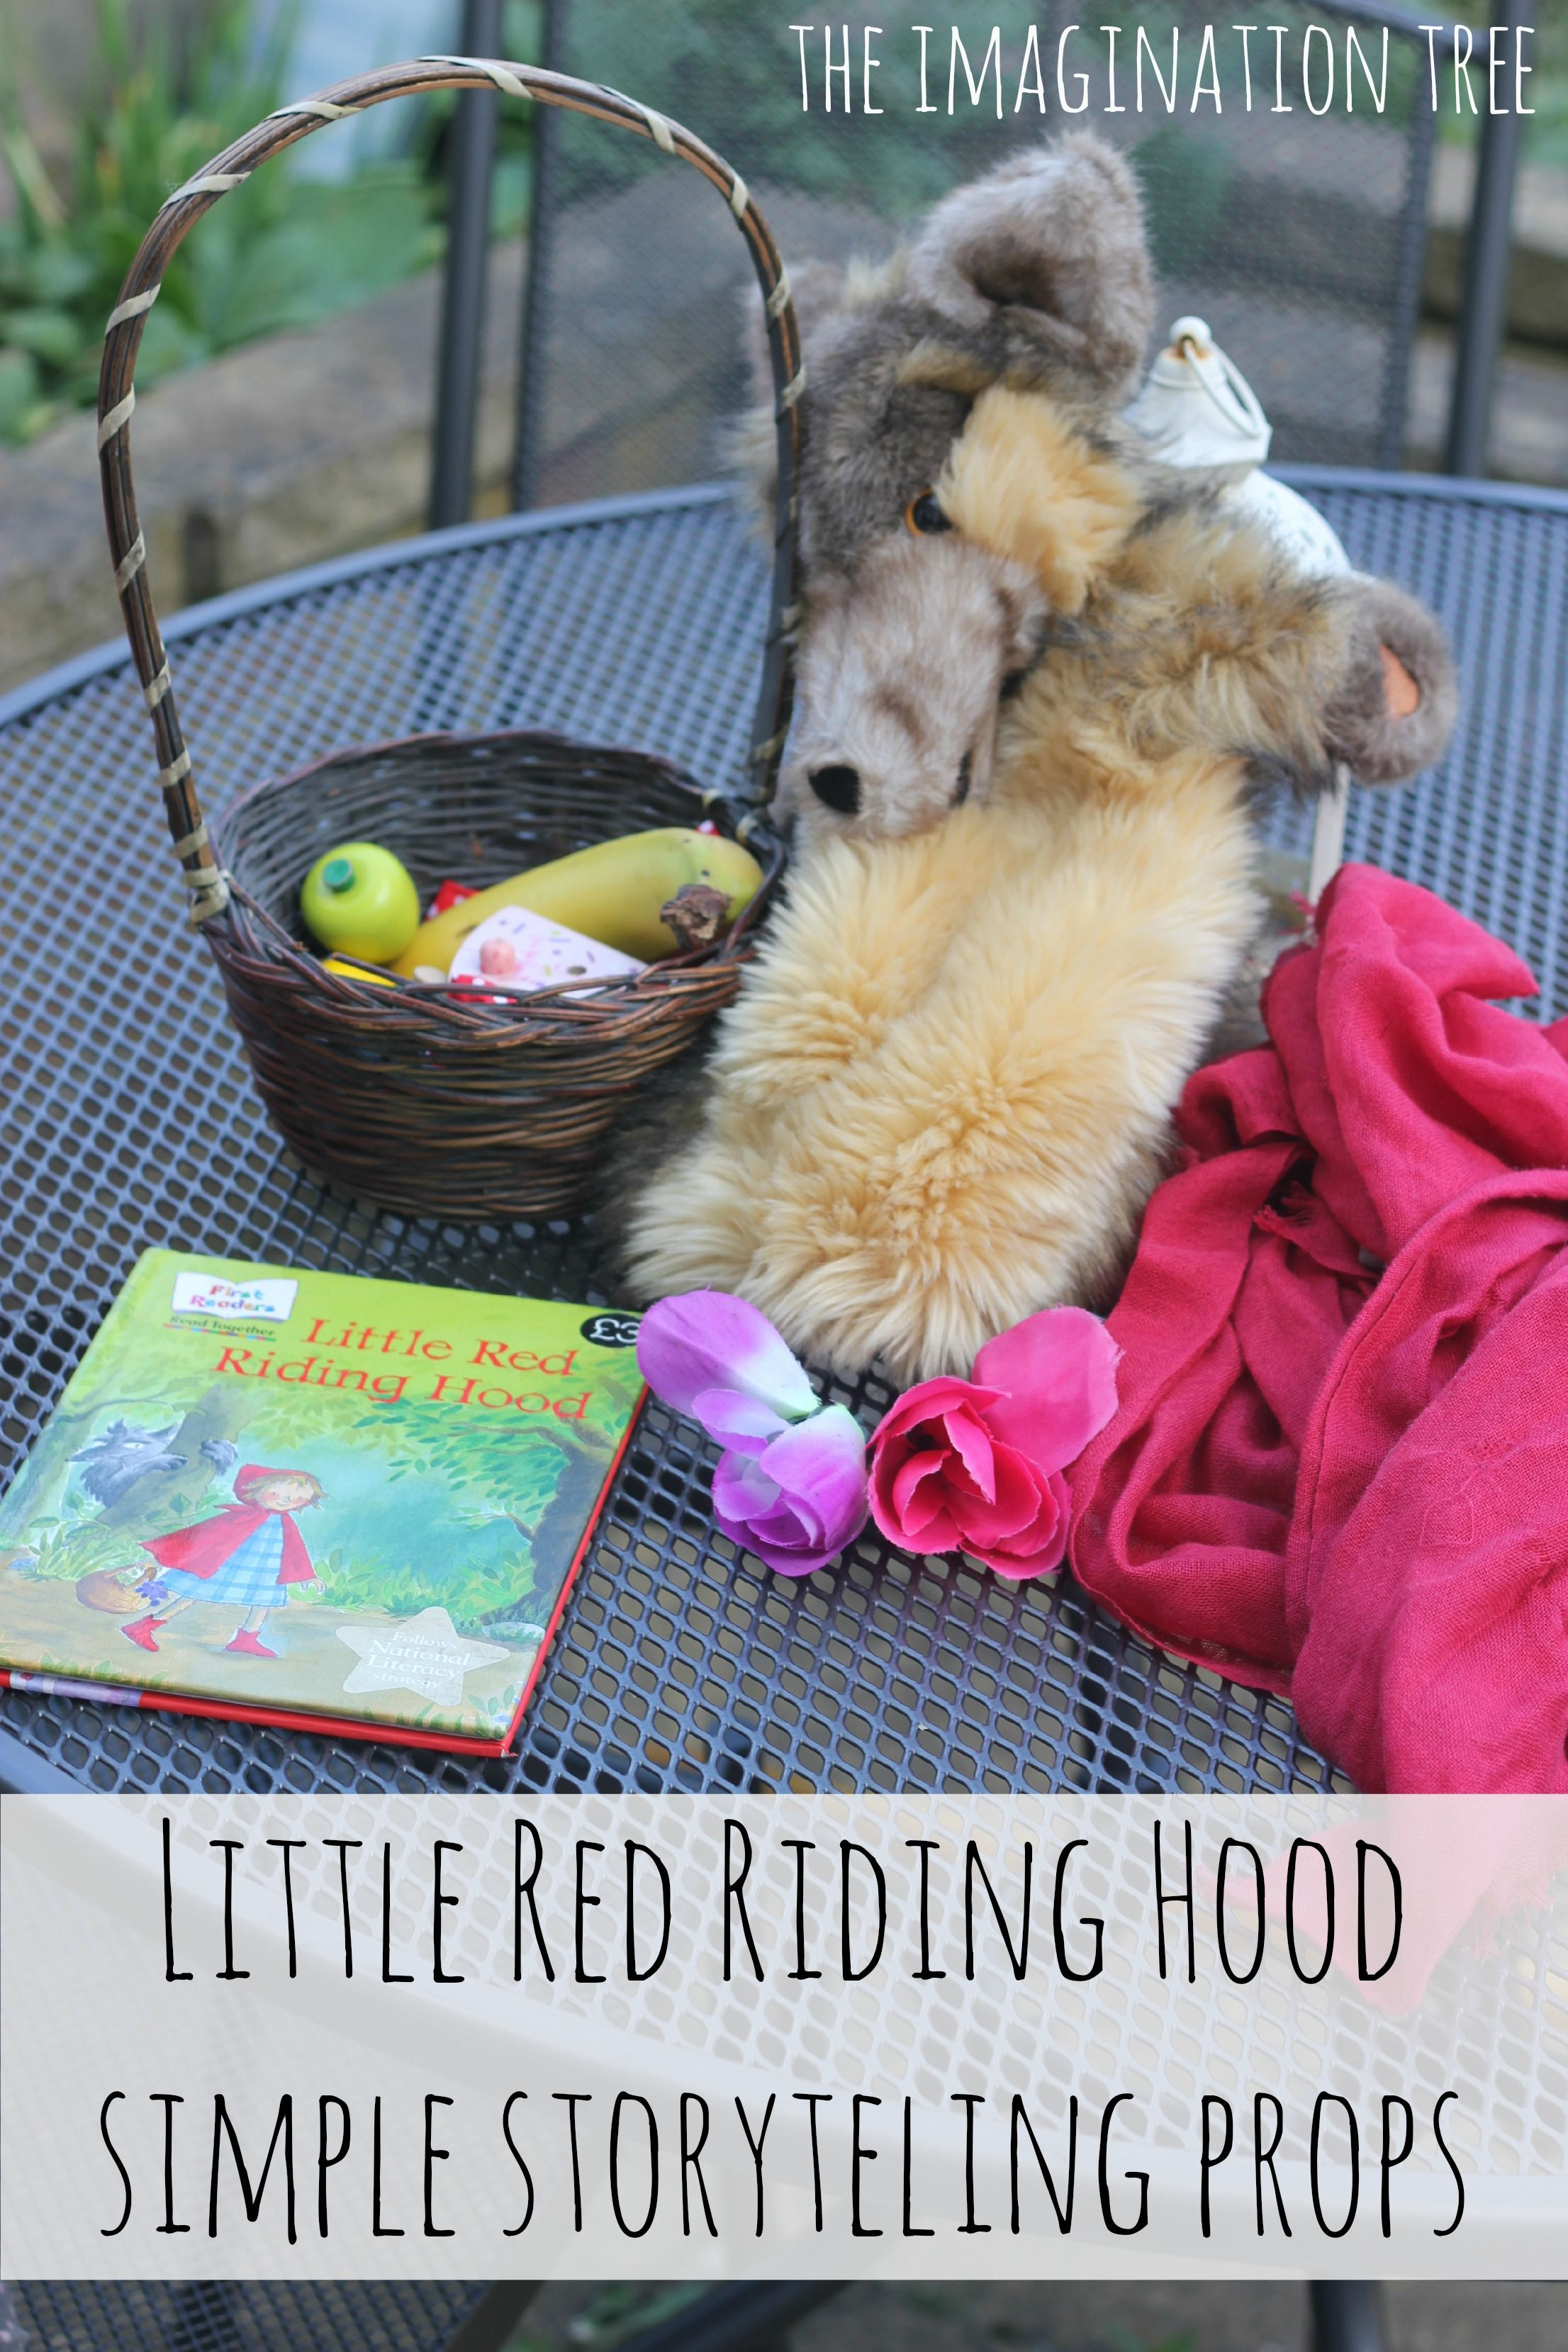 best images about what birds and plants would little red riding 17 best images about what birds and plants would little red riding hood in our park make believe lesson plans and red riding hood